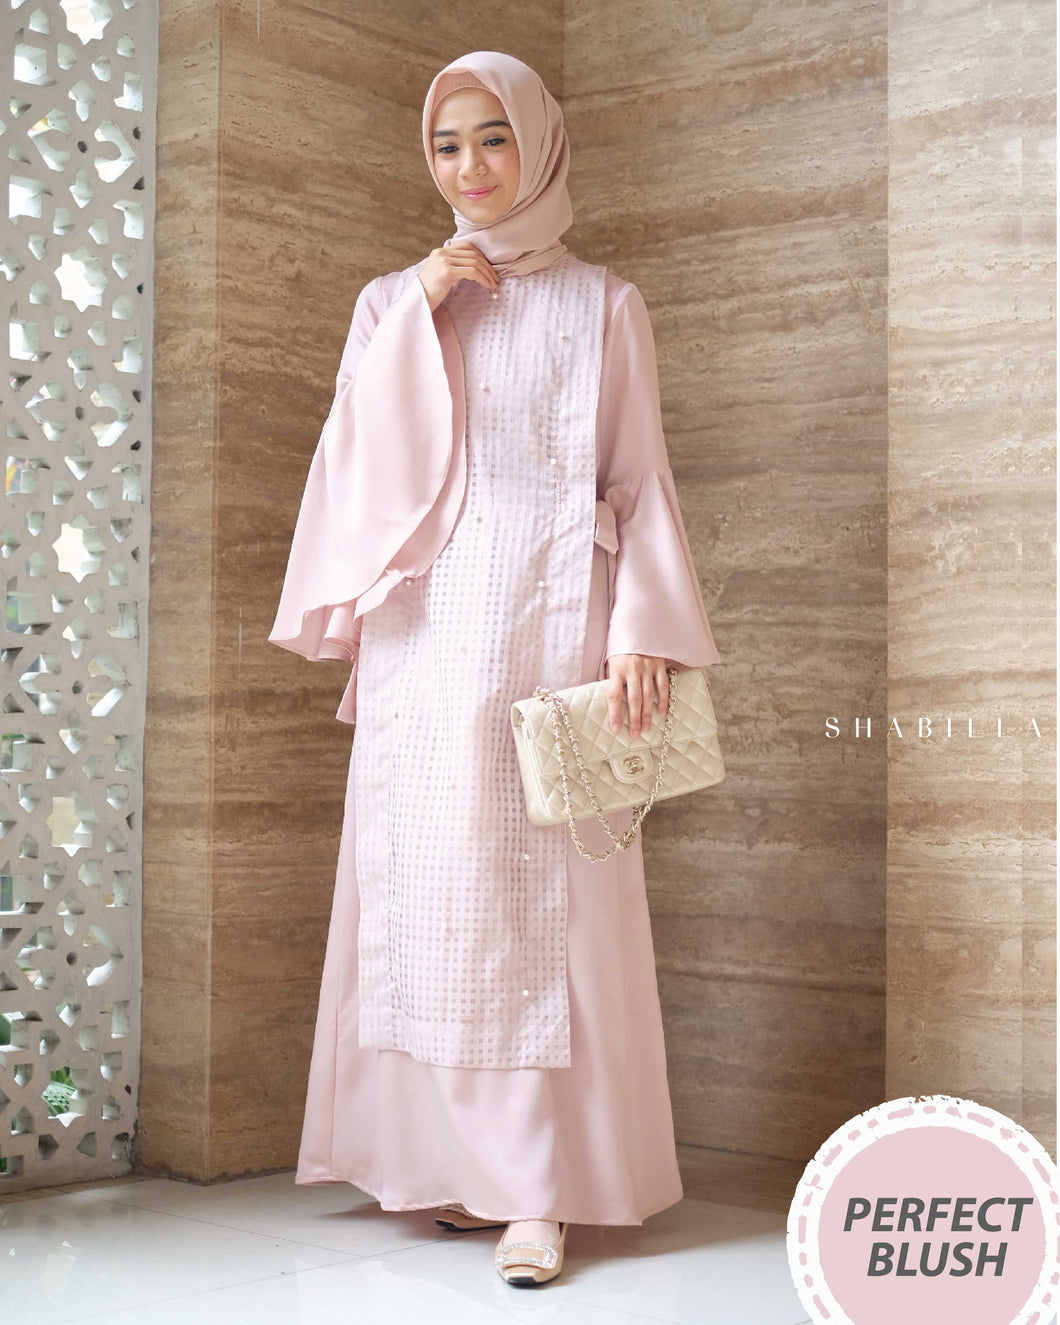 SHABILLA DRESS - PERFECT BLUSH